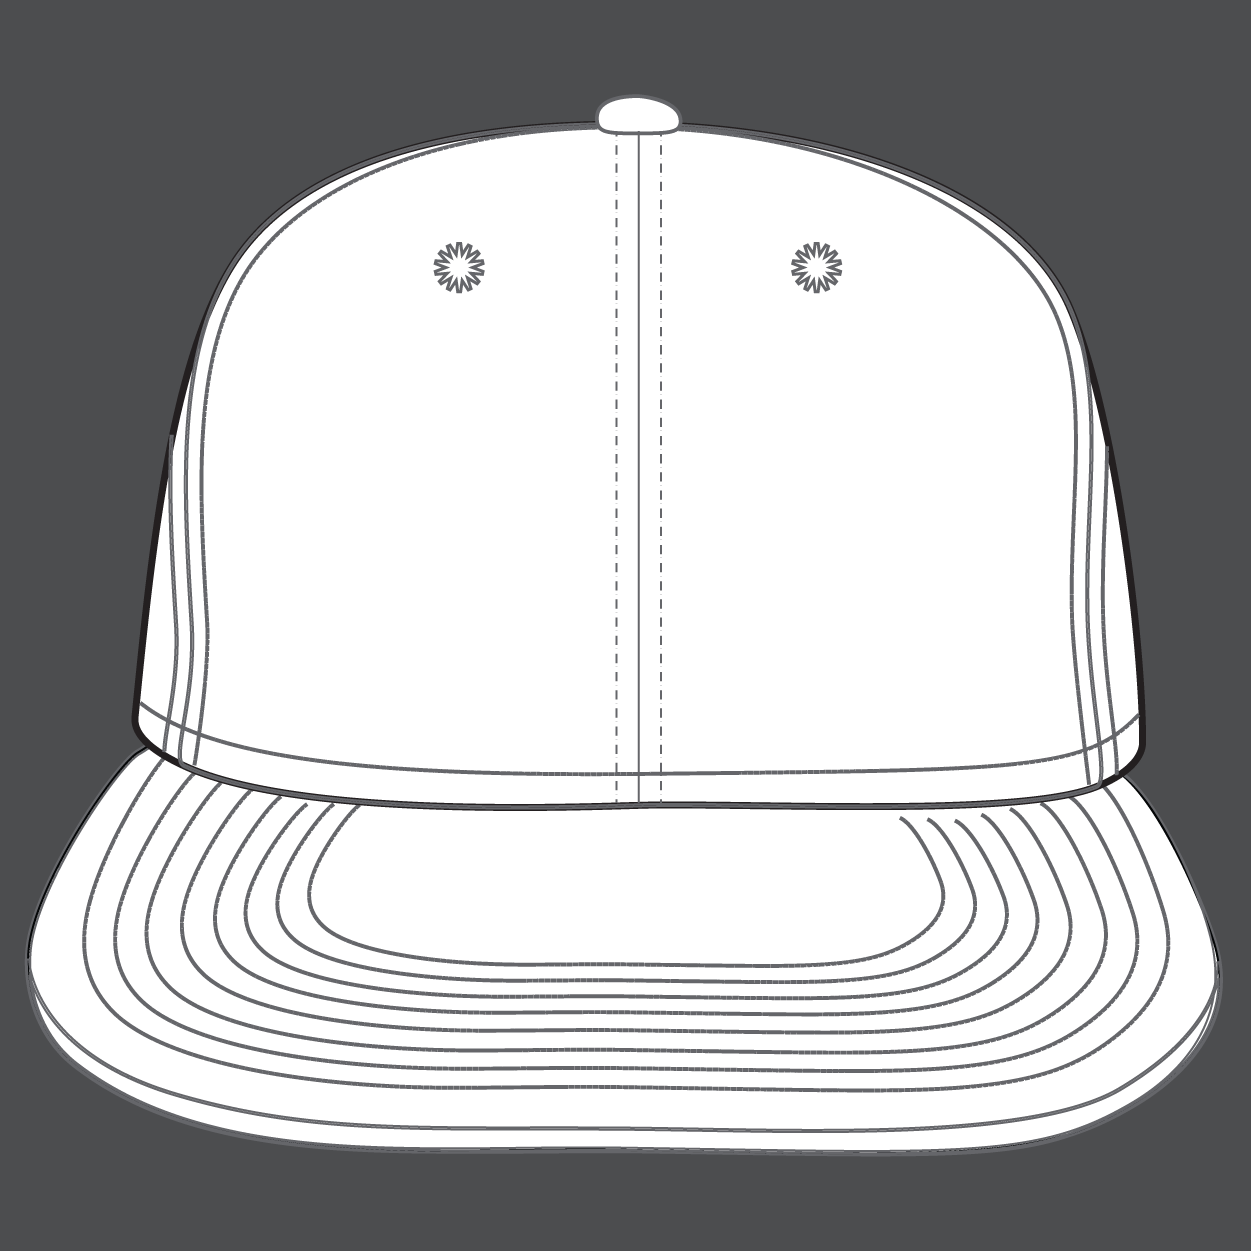 Baseball Cap - Retail Price:$44.99Team Price 12-23:$29.99Team Price 24+:$24.99Team Price 50+:Contact your Emblem Rep for a custom quoteOptions: Snap back, Velcro Opening, Closed Back